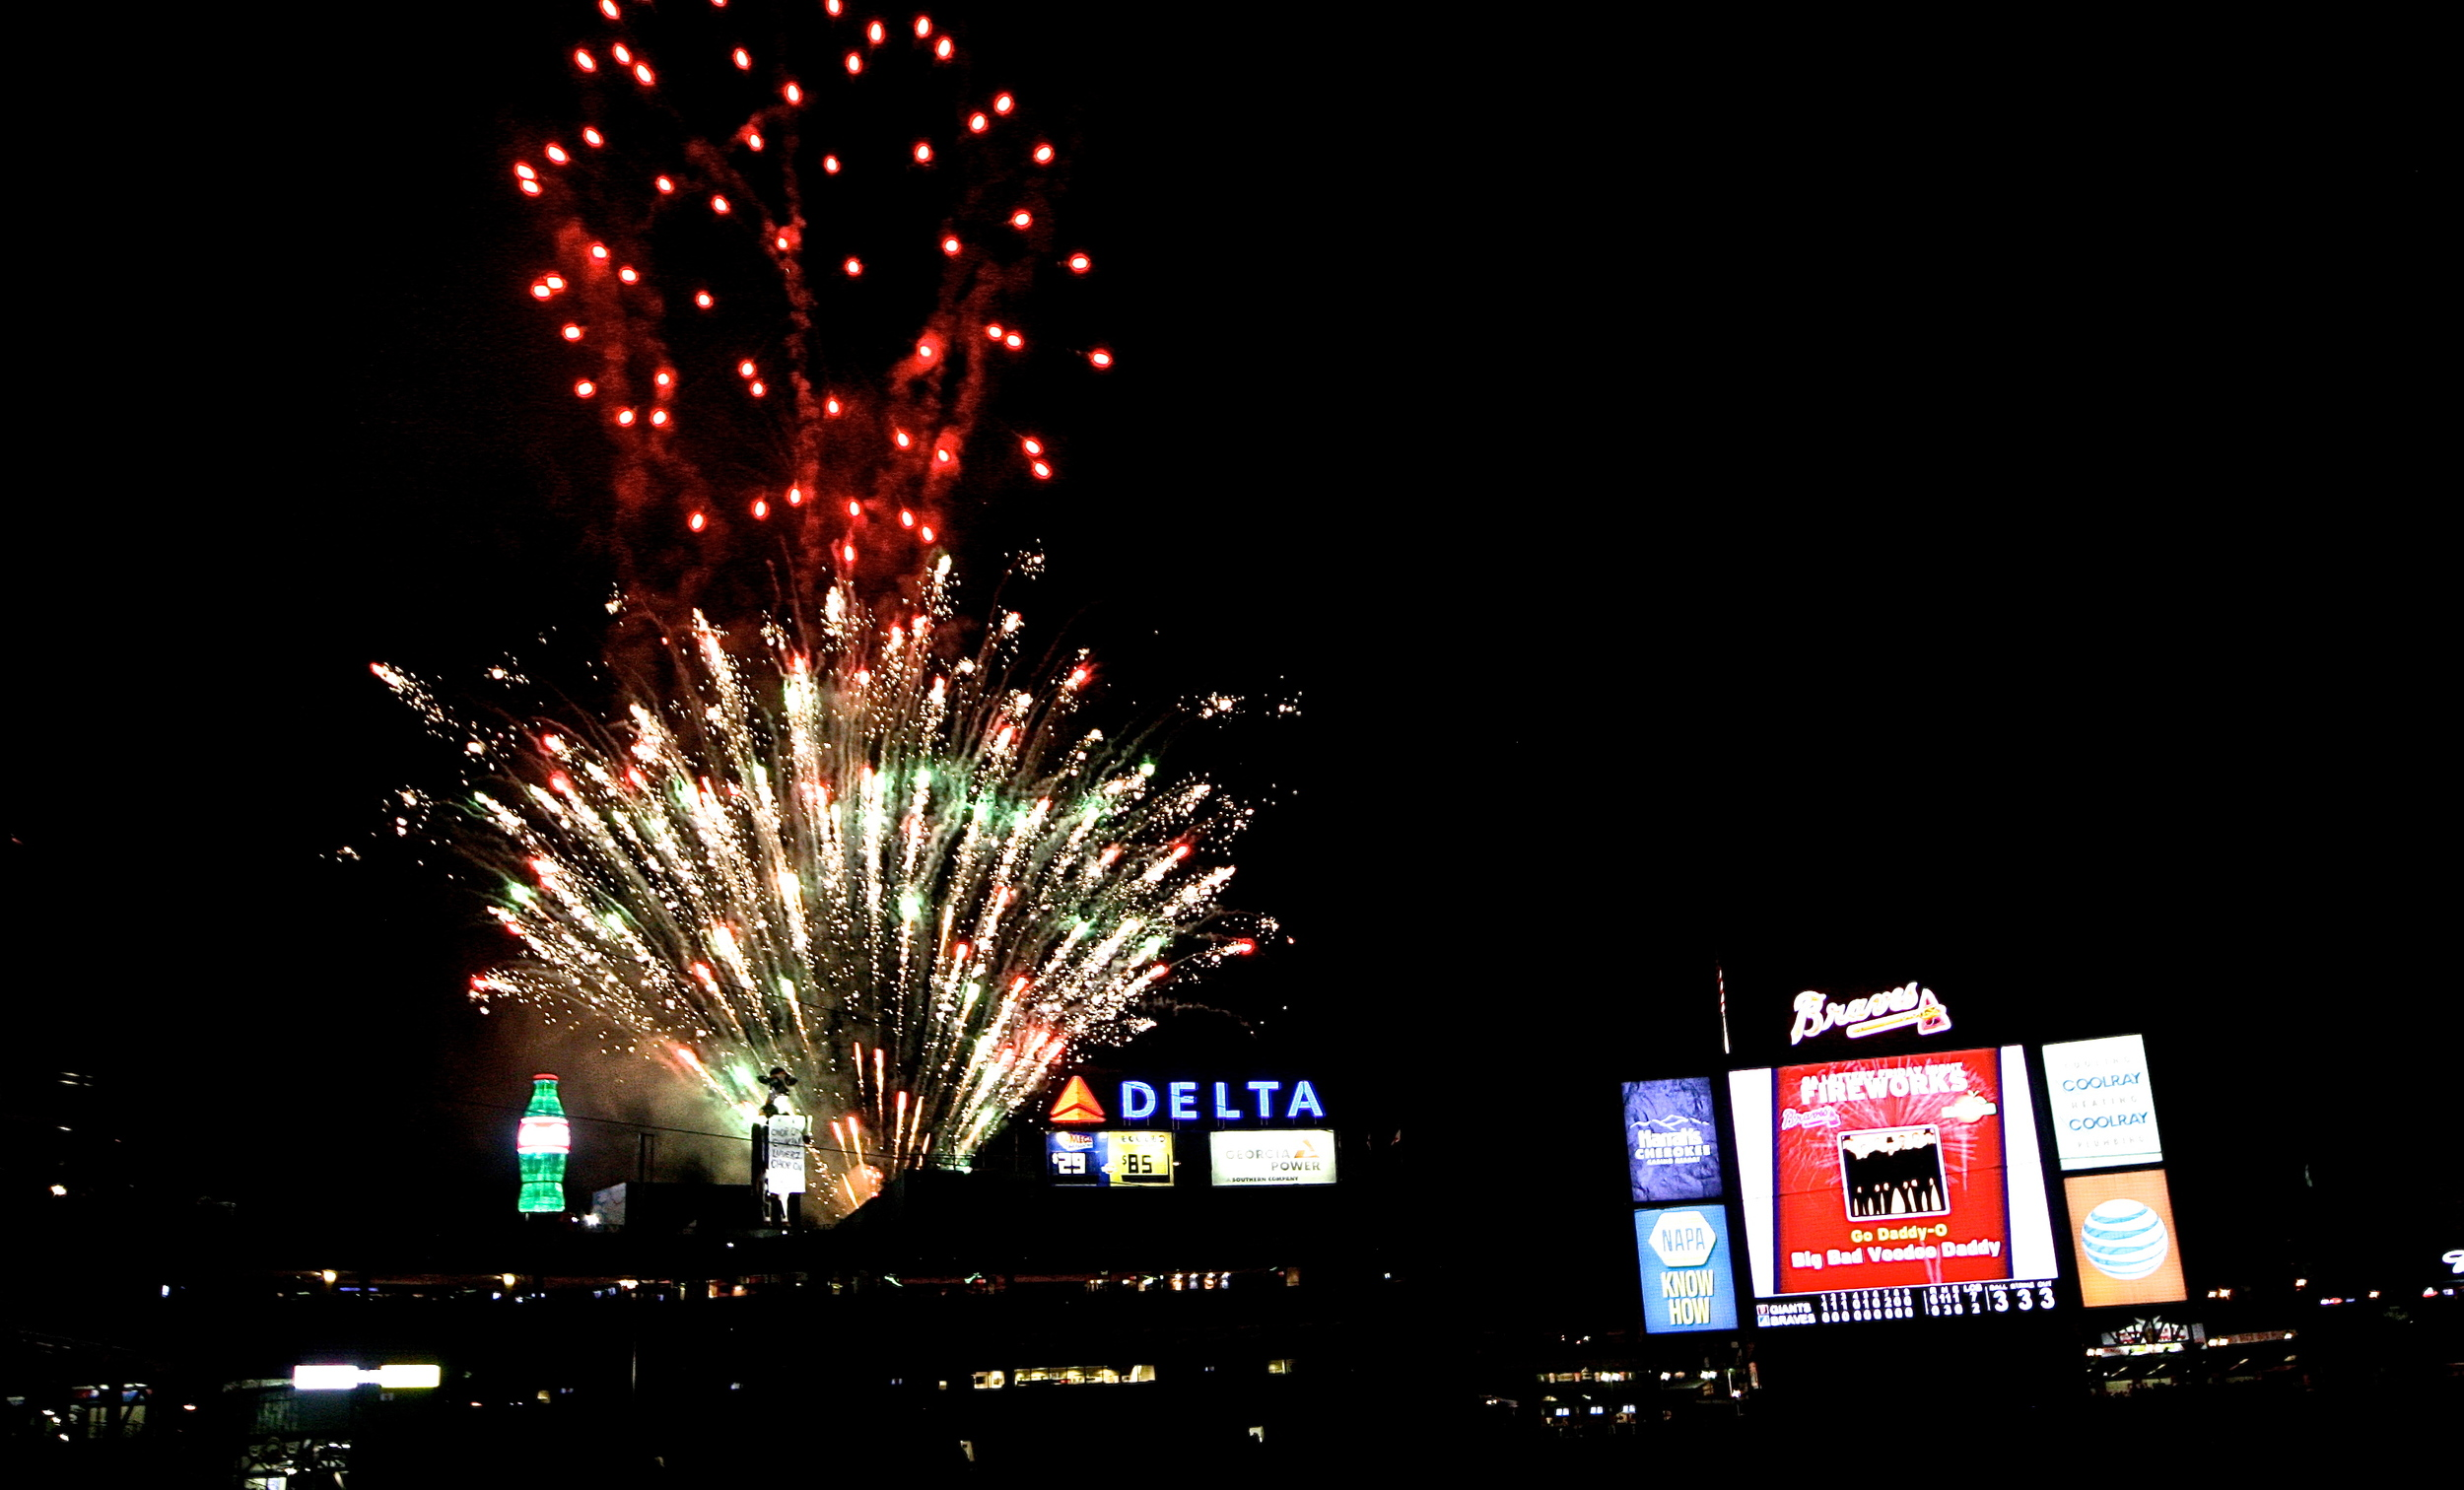 Post game fireworks